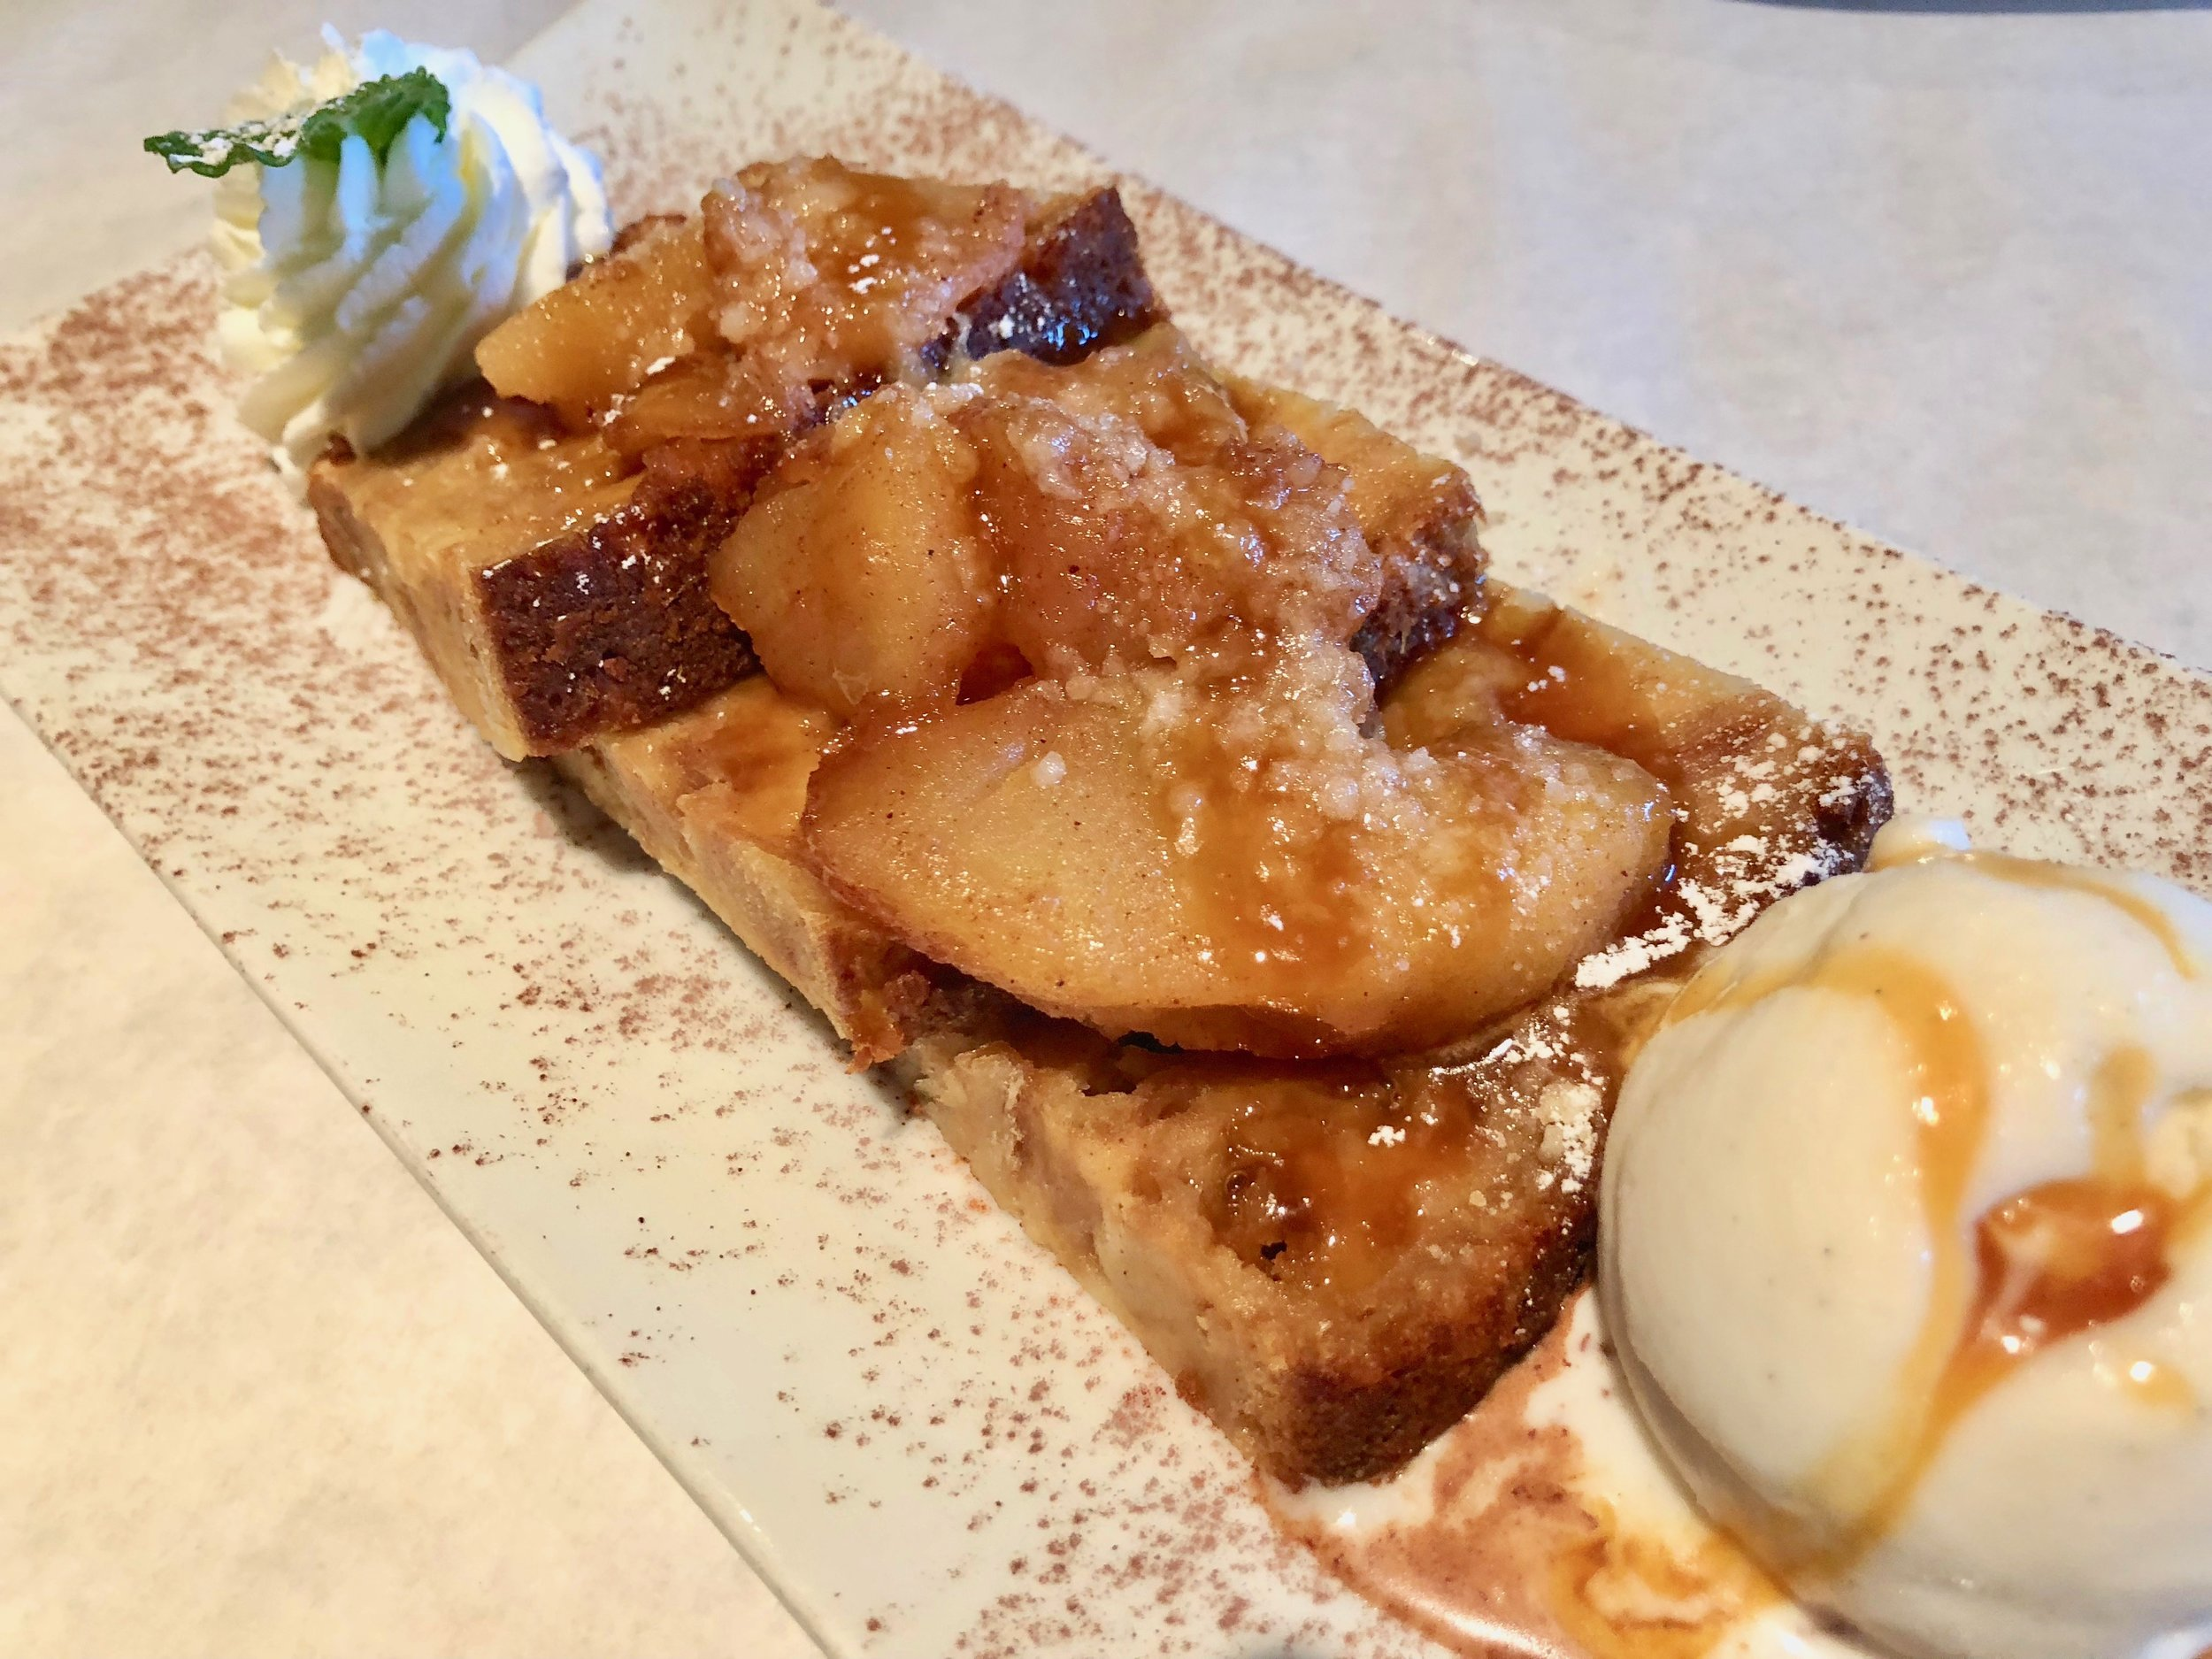 A wonderful dessert: 'Apple Pie' bread pudding made with braised cinnamon apples, salted caramel sauce, crumb topping and vanilla ice cream